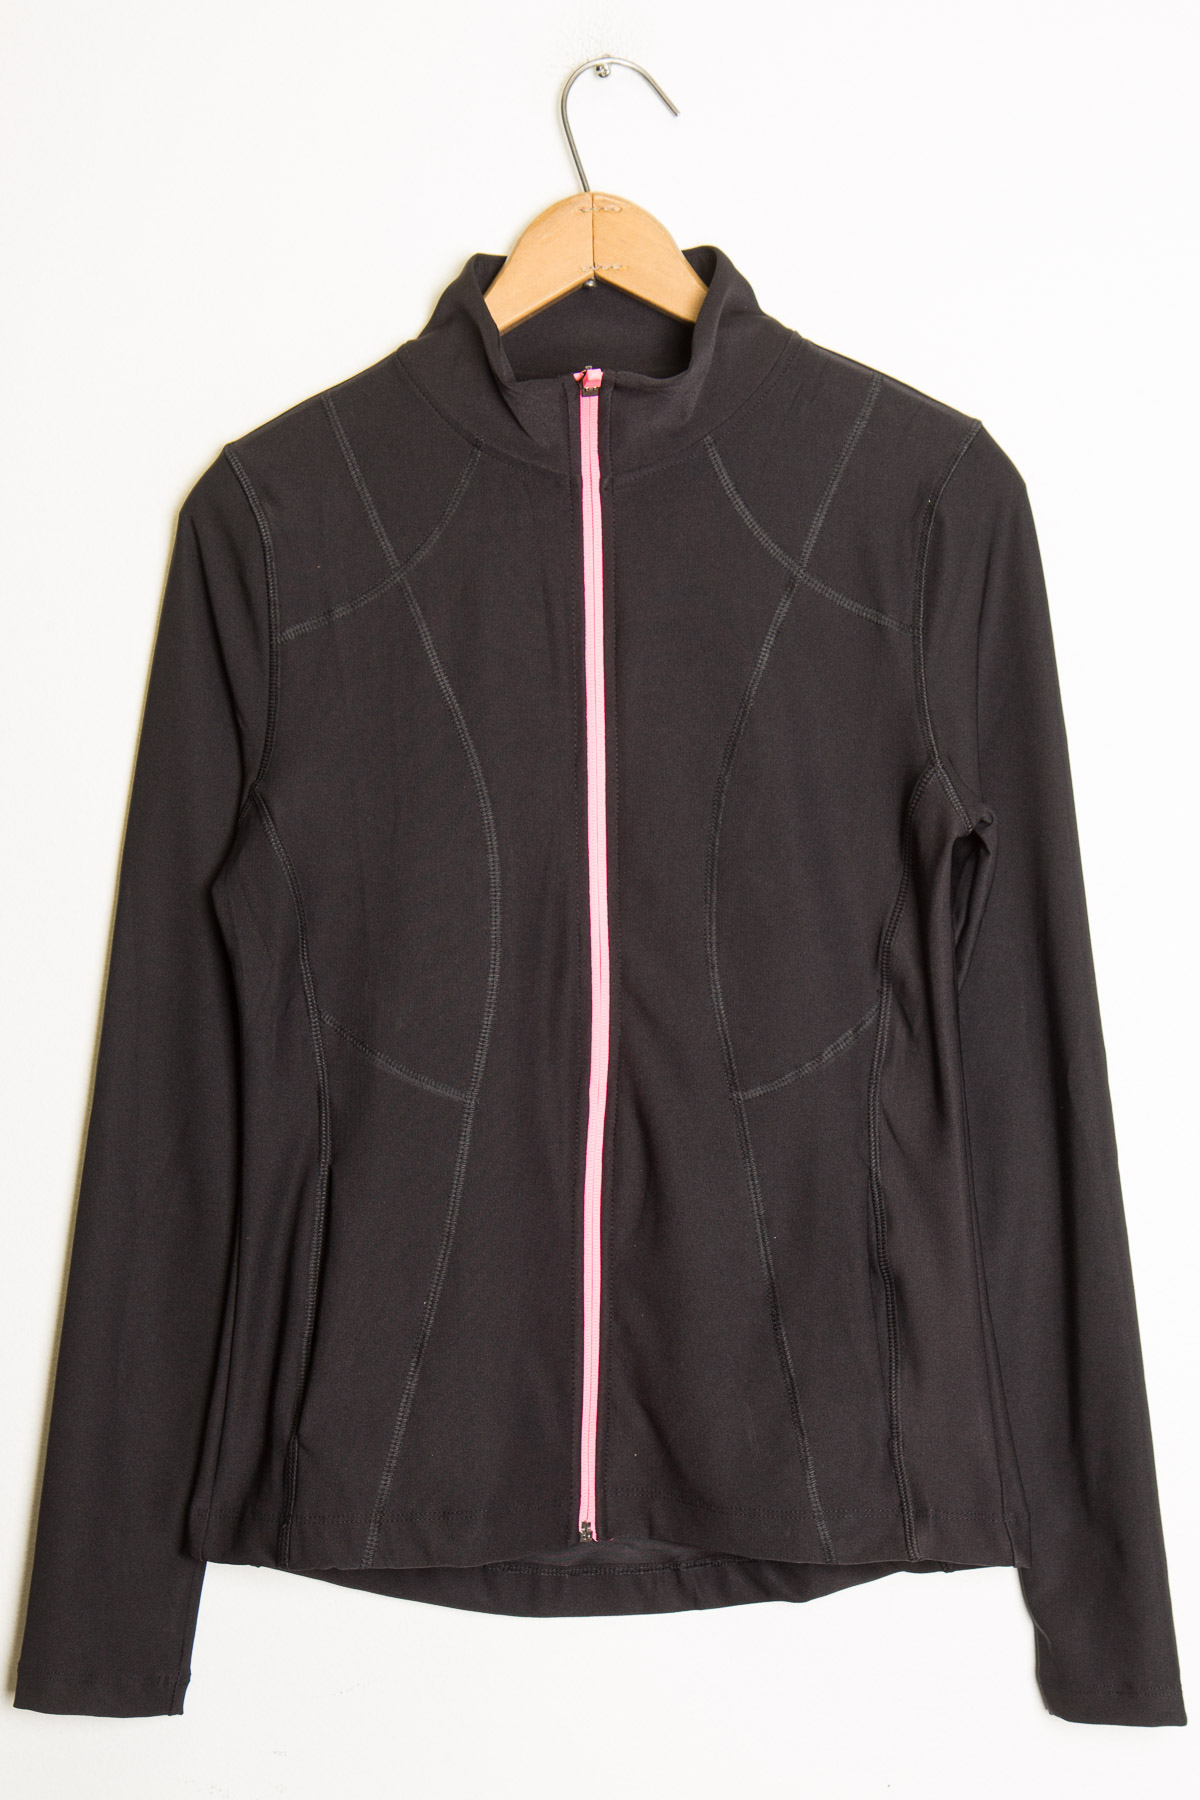 Black Sports Jacket - Ragstock